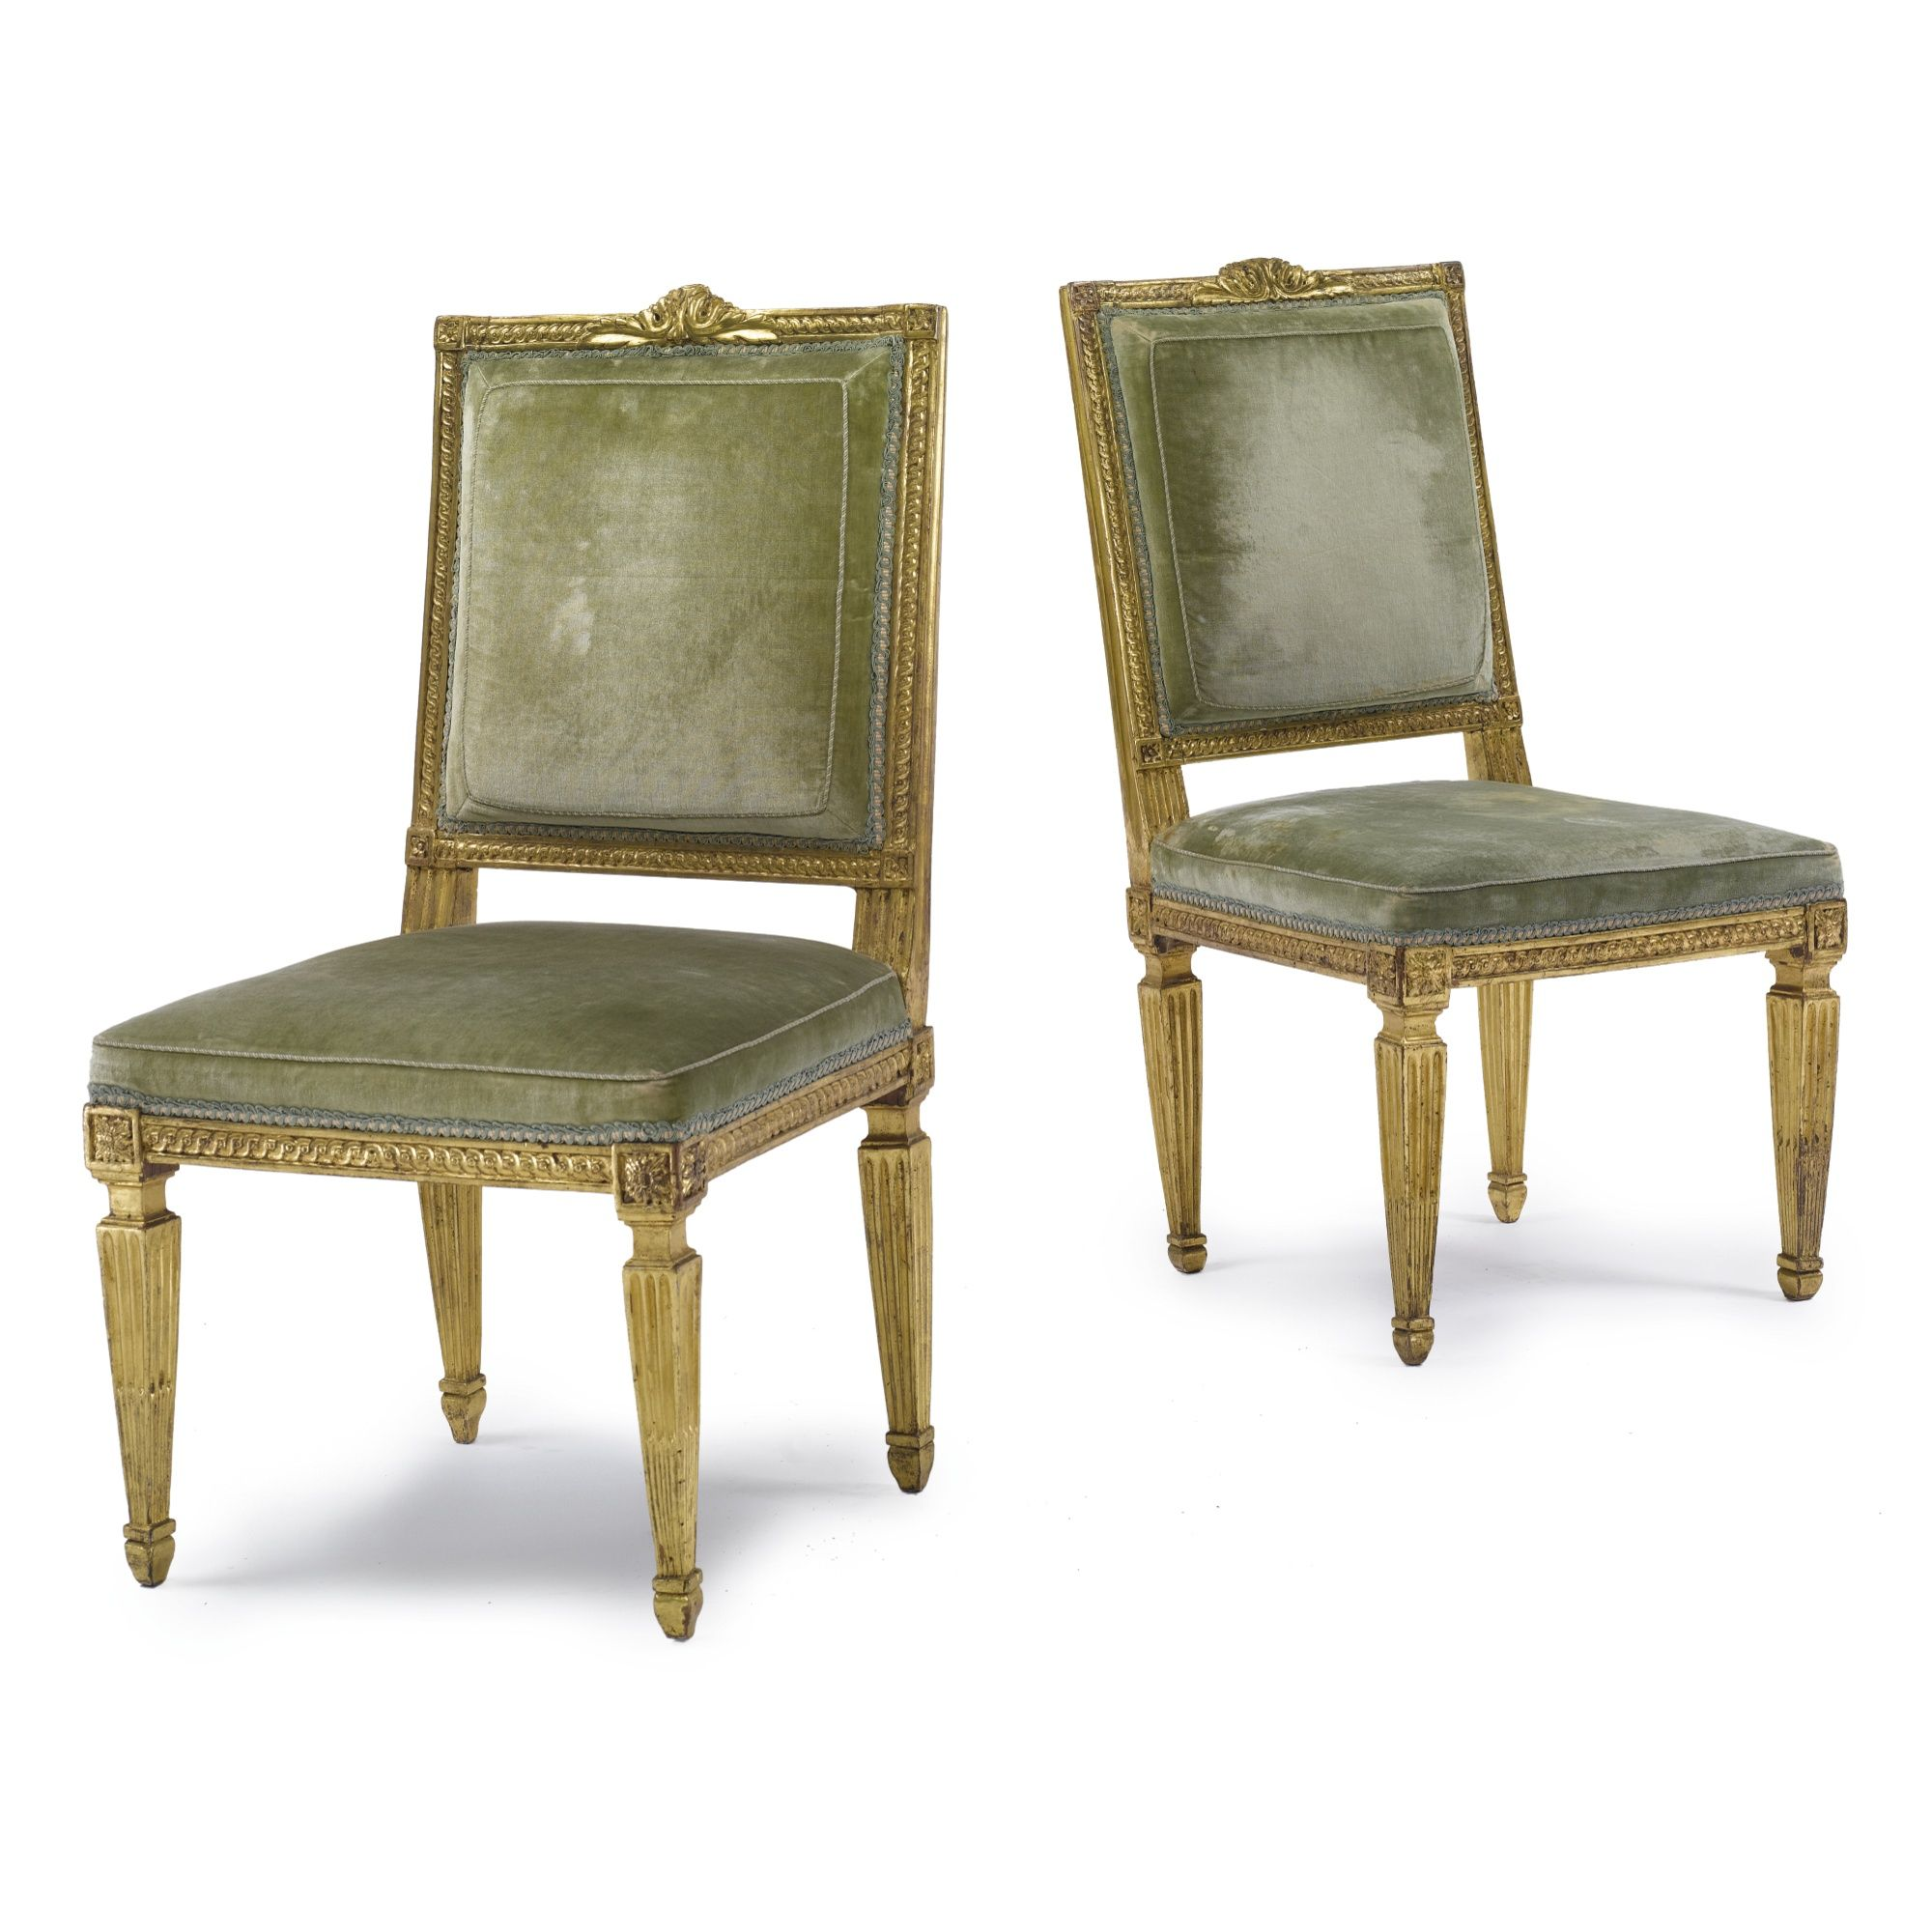 c1775 A pair of Louis XVI carved giltwood chairs circa